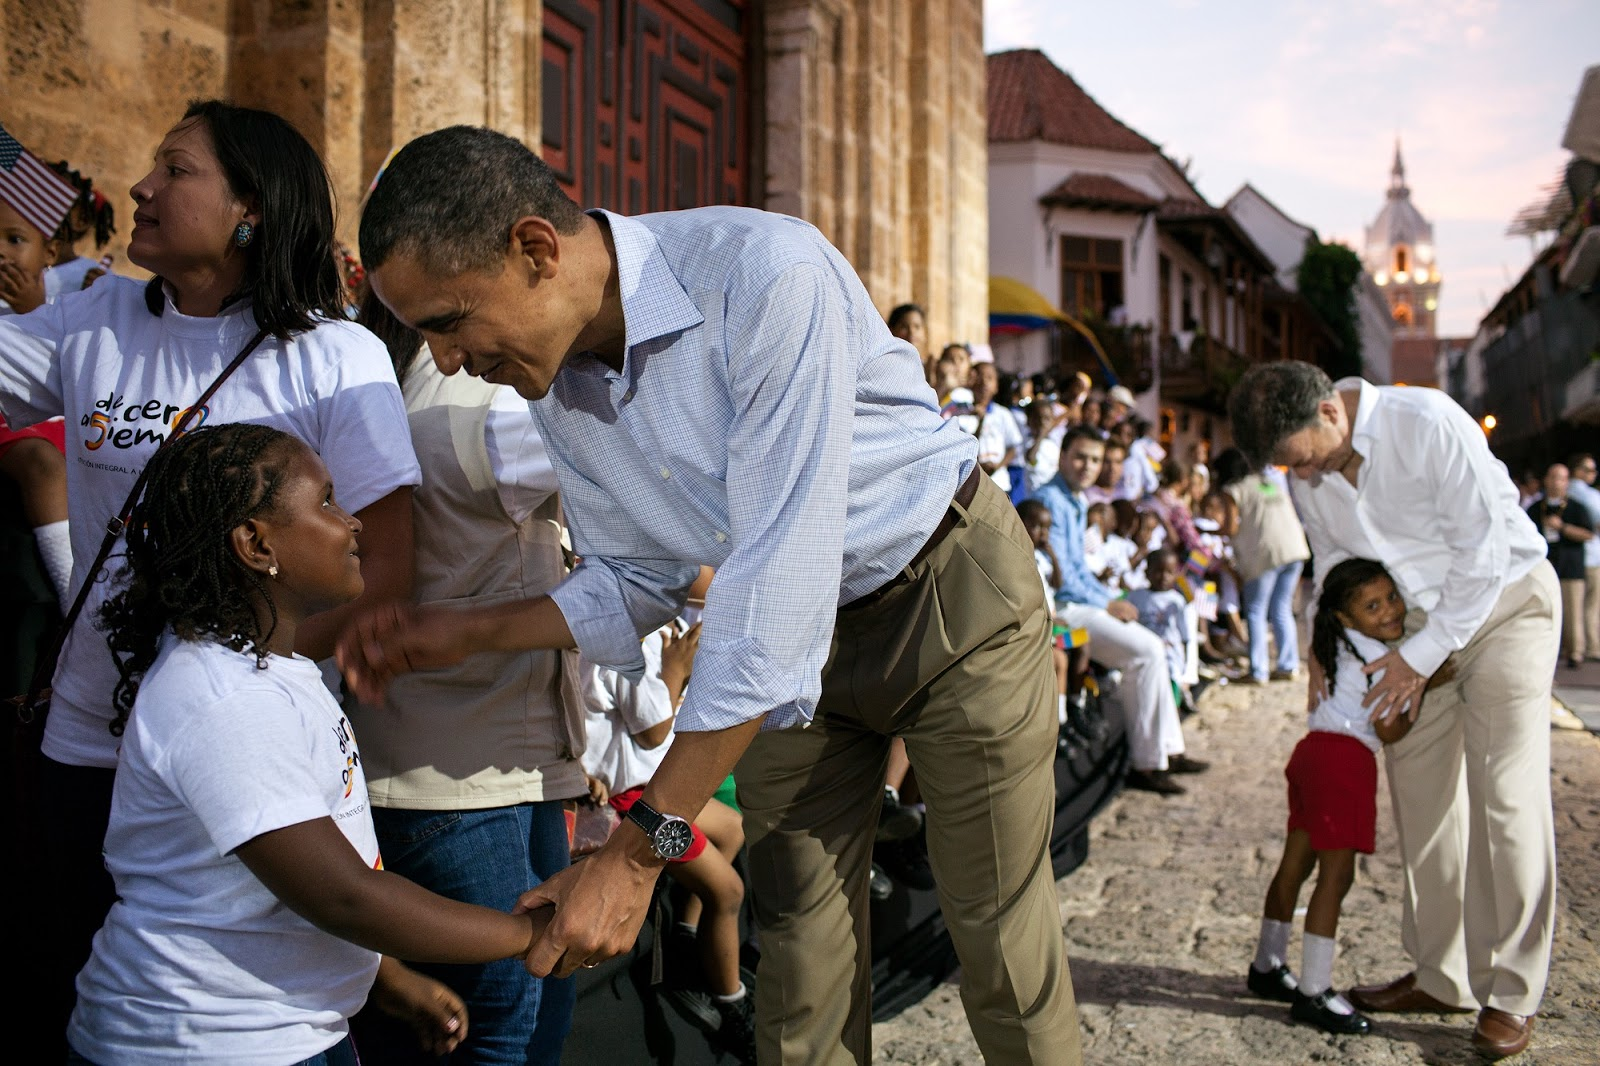 President Obama discusses the value of international travel, especially to young people in an exclusive article for LonelyPlanet.com.